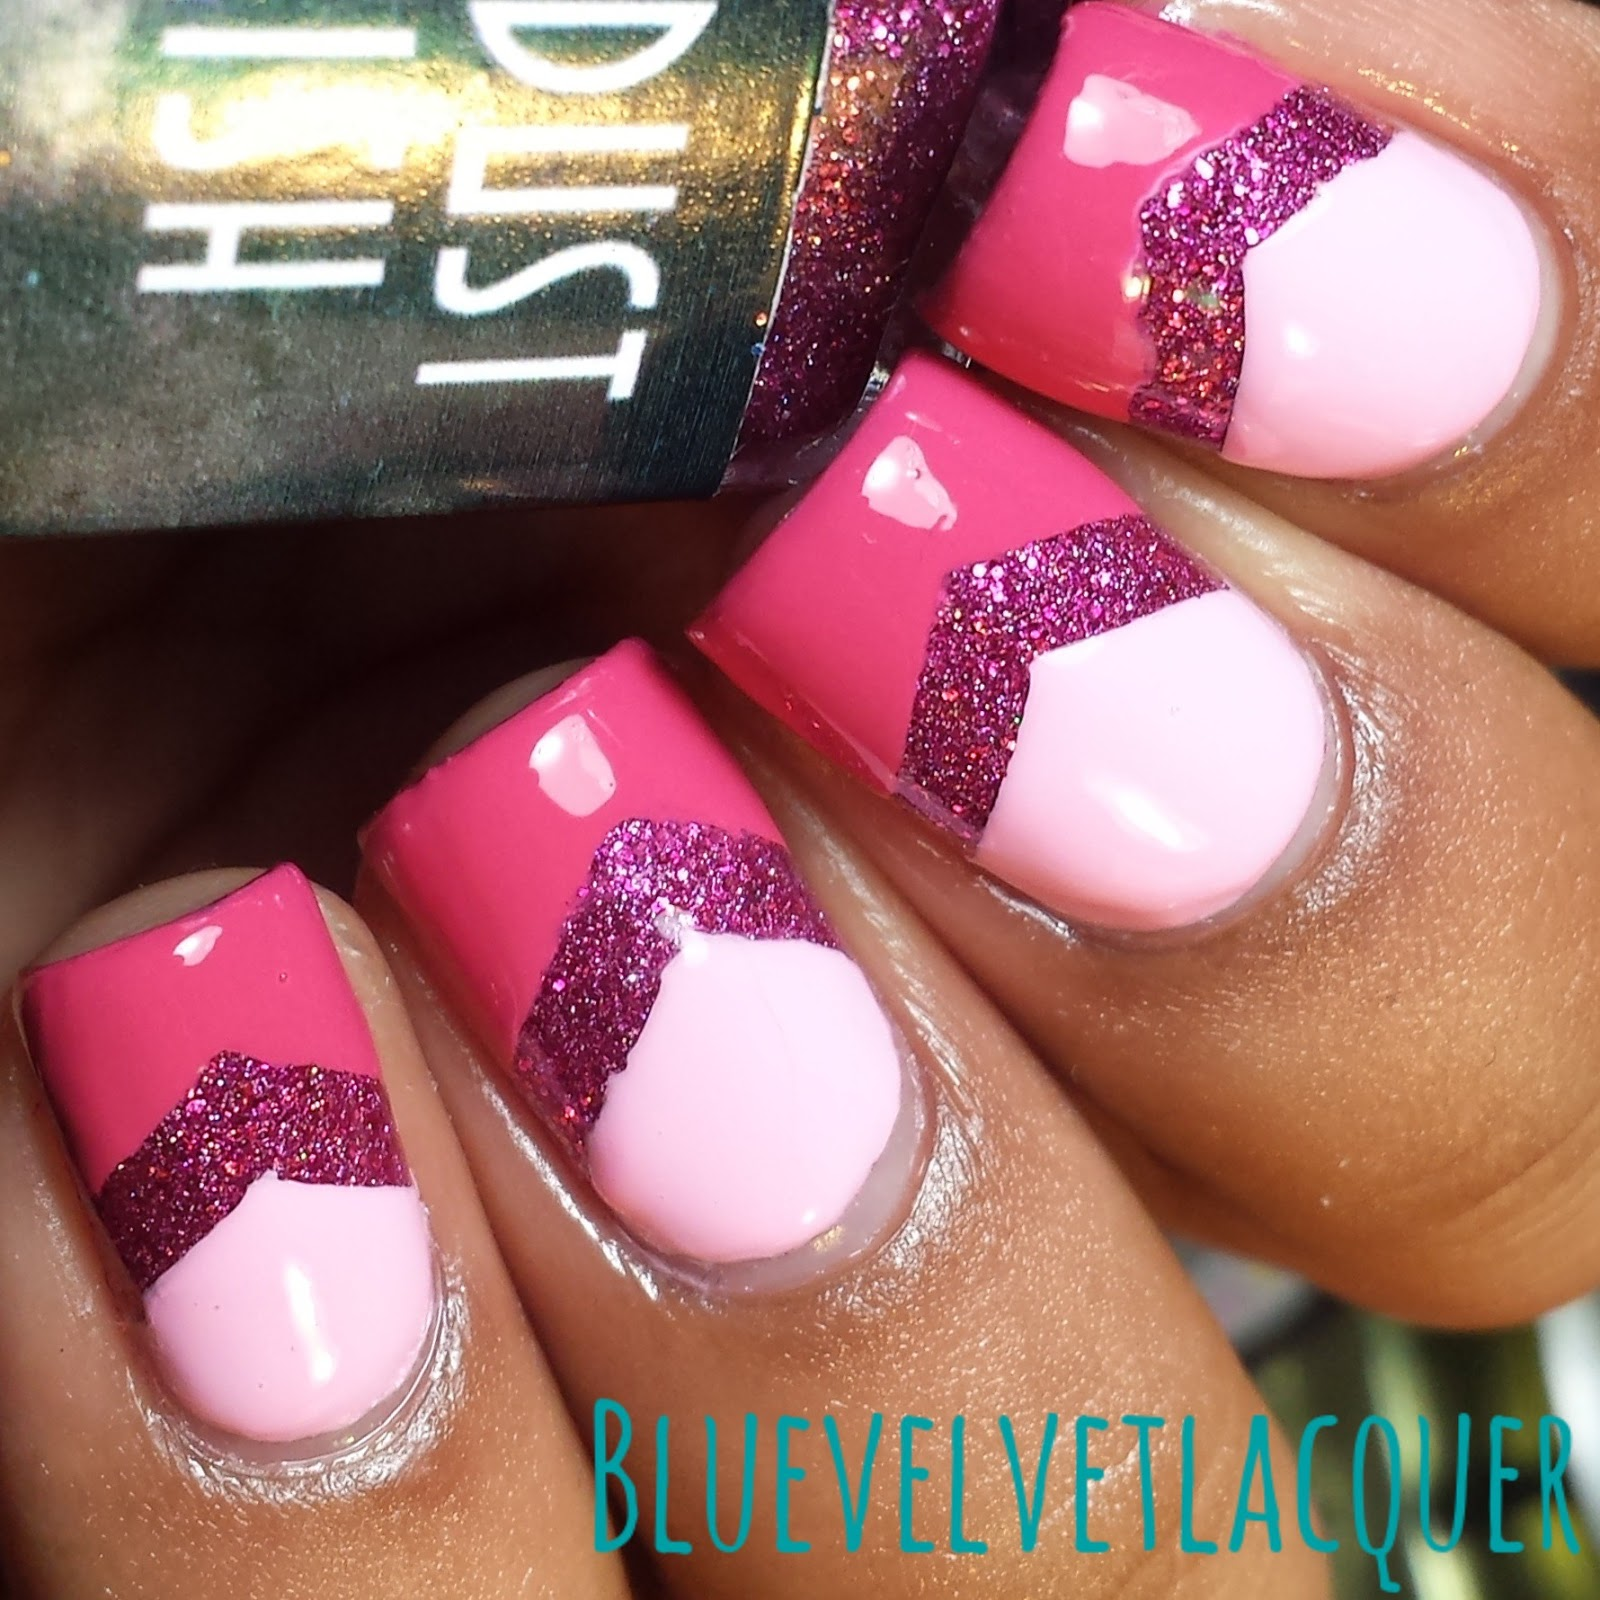 Sleeping Beauty Nail Art: Blue Velvet Lacquer: Stardust Polish: Swatches & Review